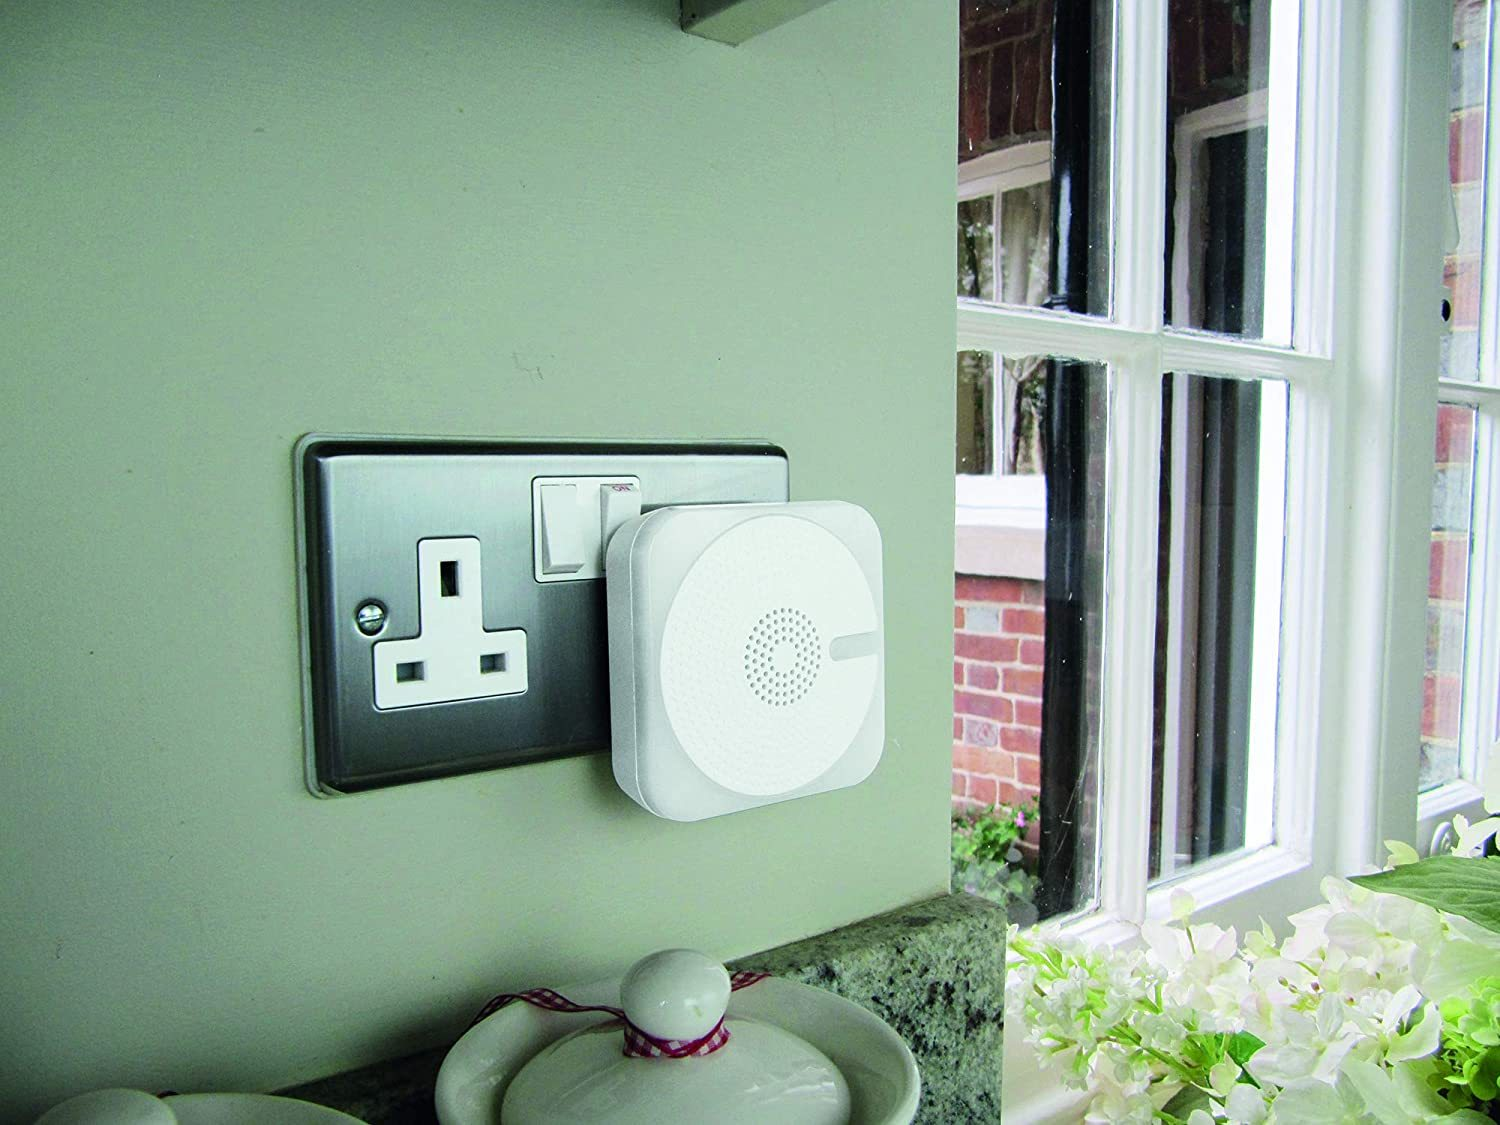 Additional Plug-in Door Chime -No push - White UNI-66408x